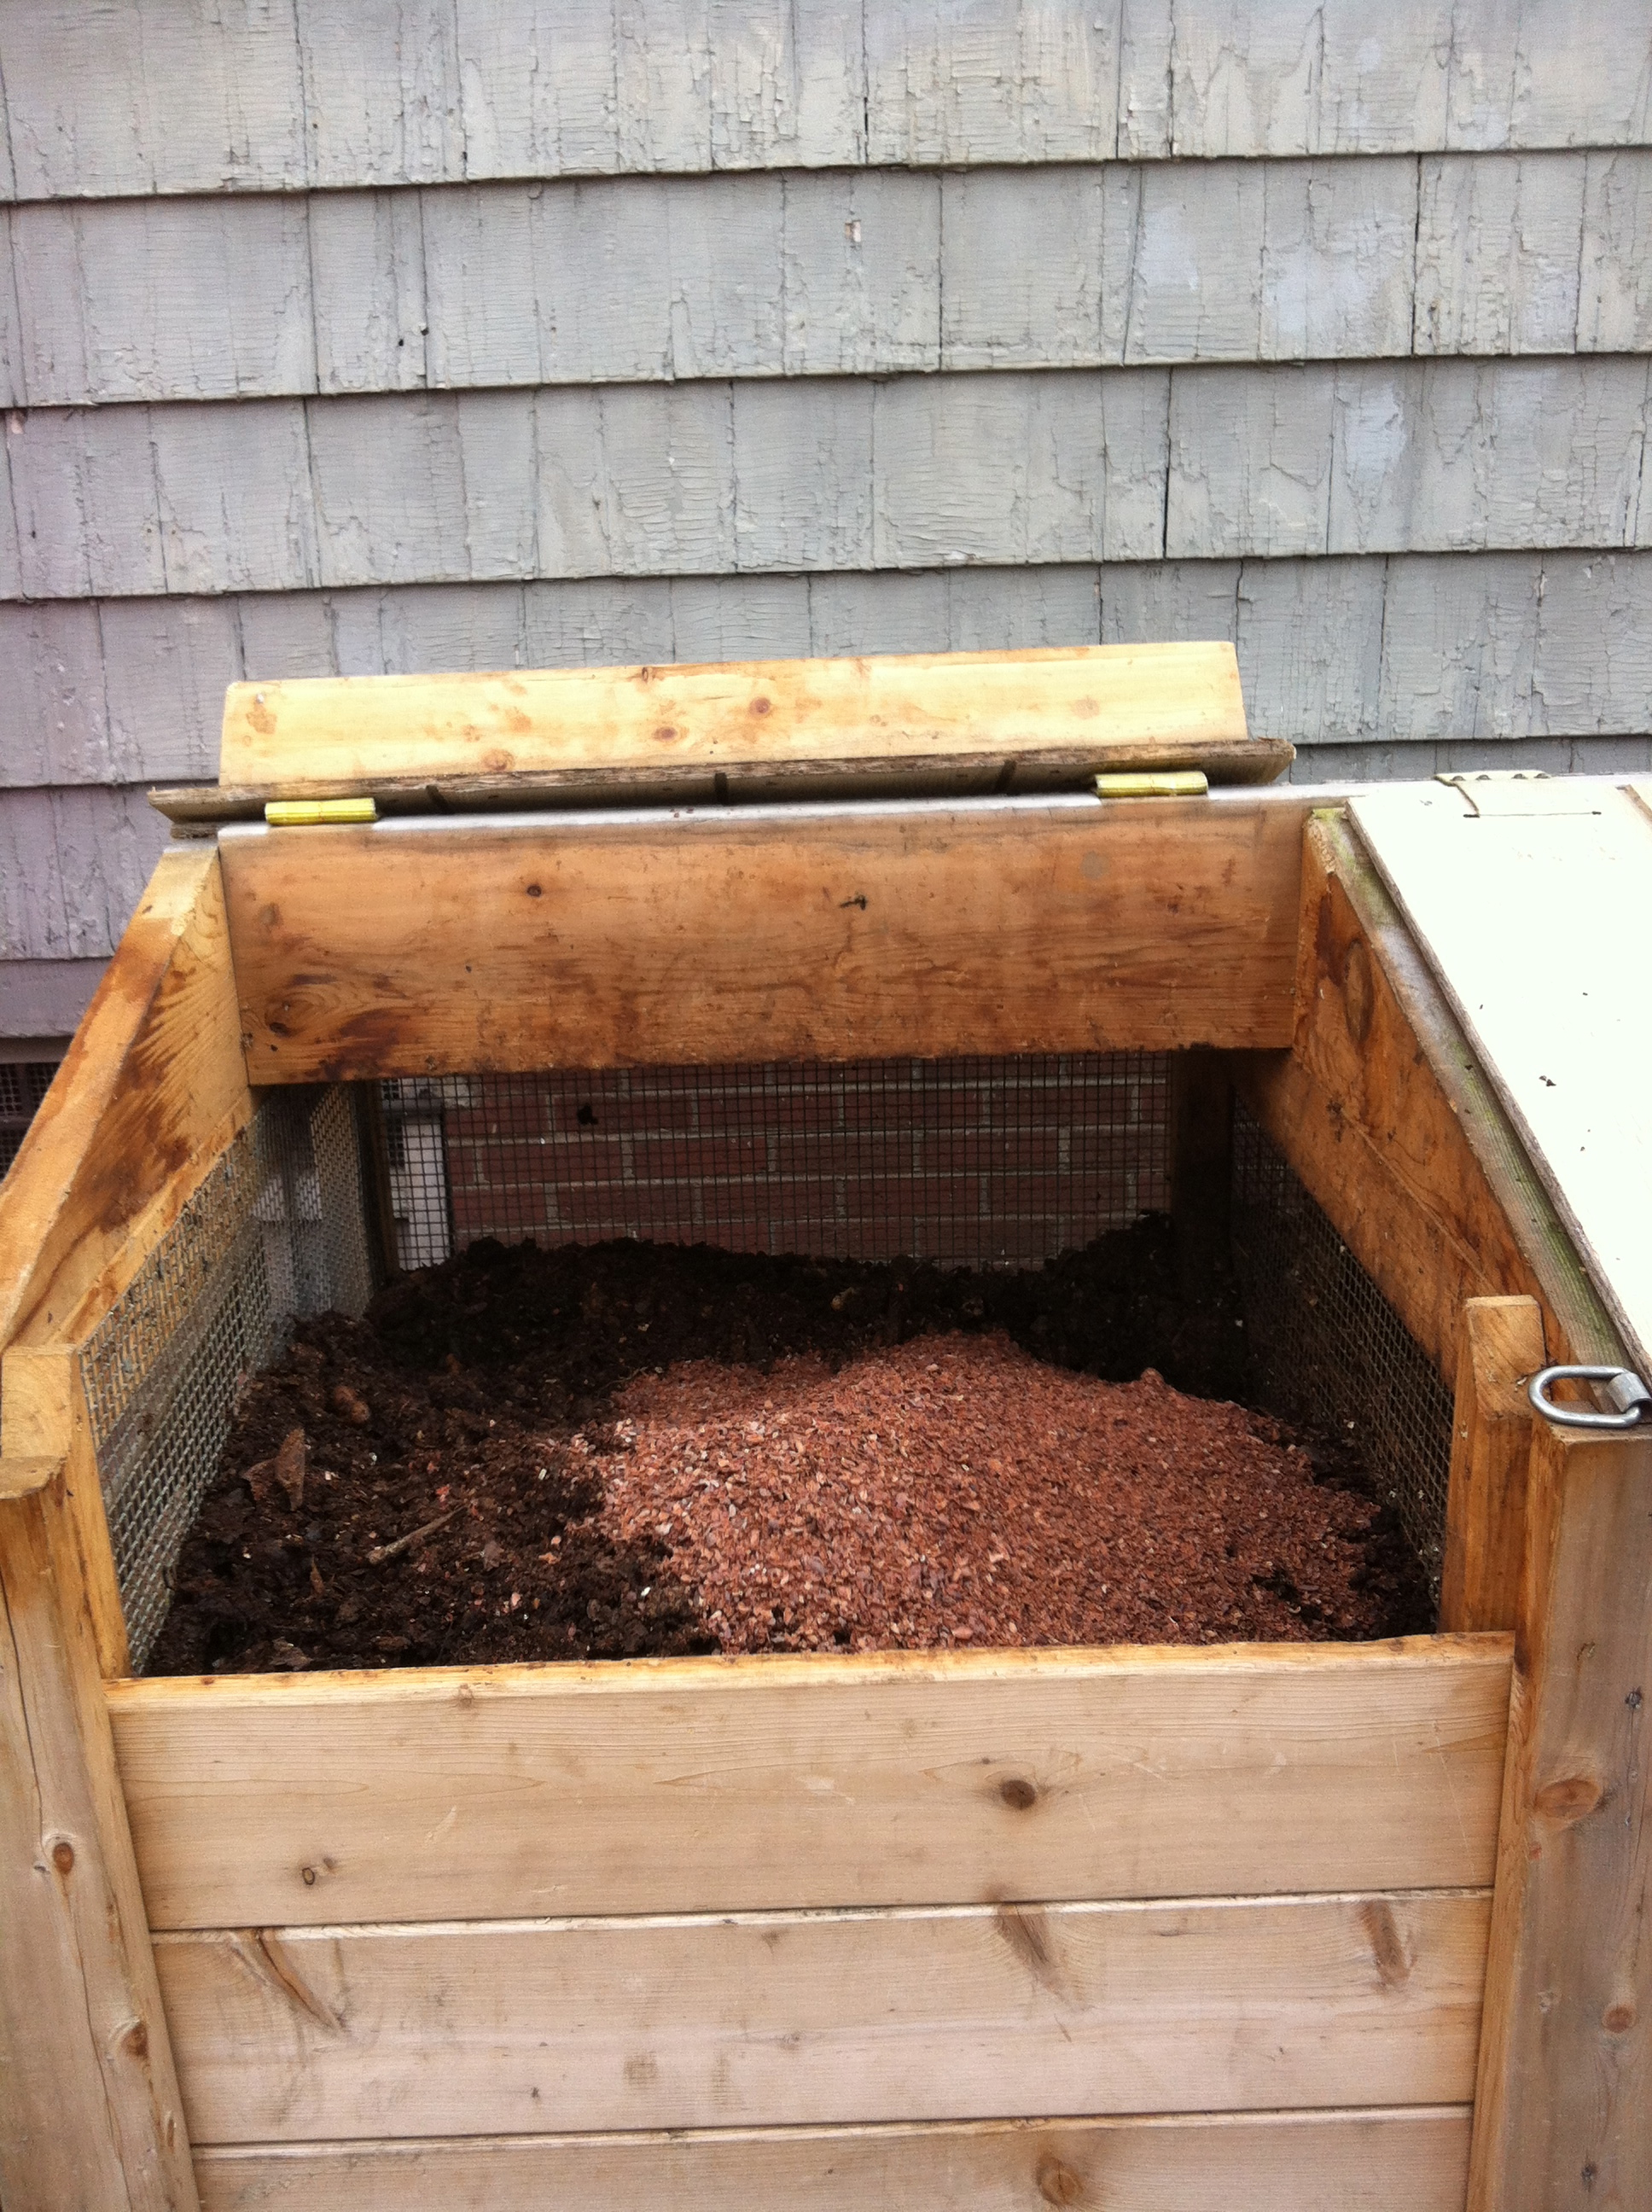 Compost bin with cocoa hulls